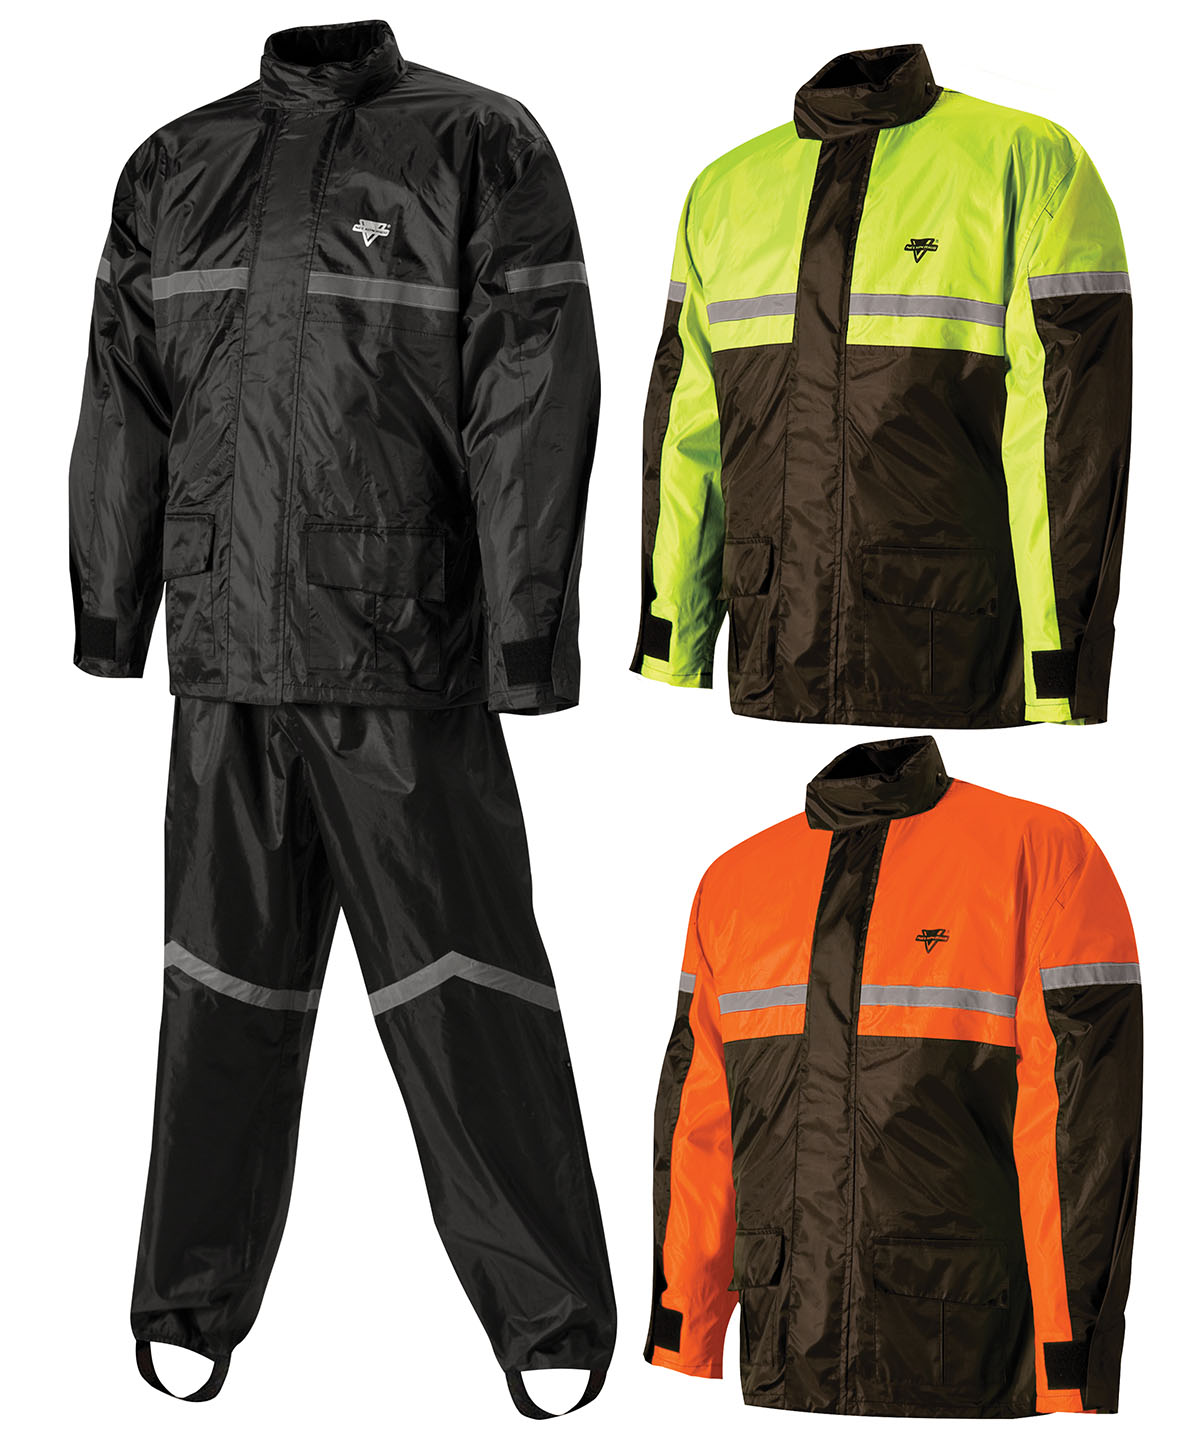 Motorcycle Rain Gear Nelson Rigg